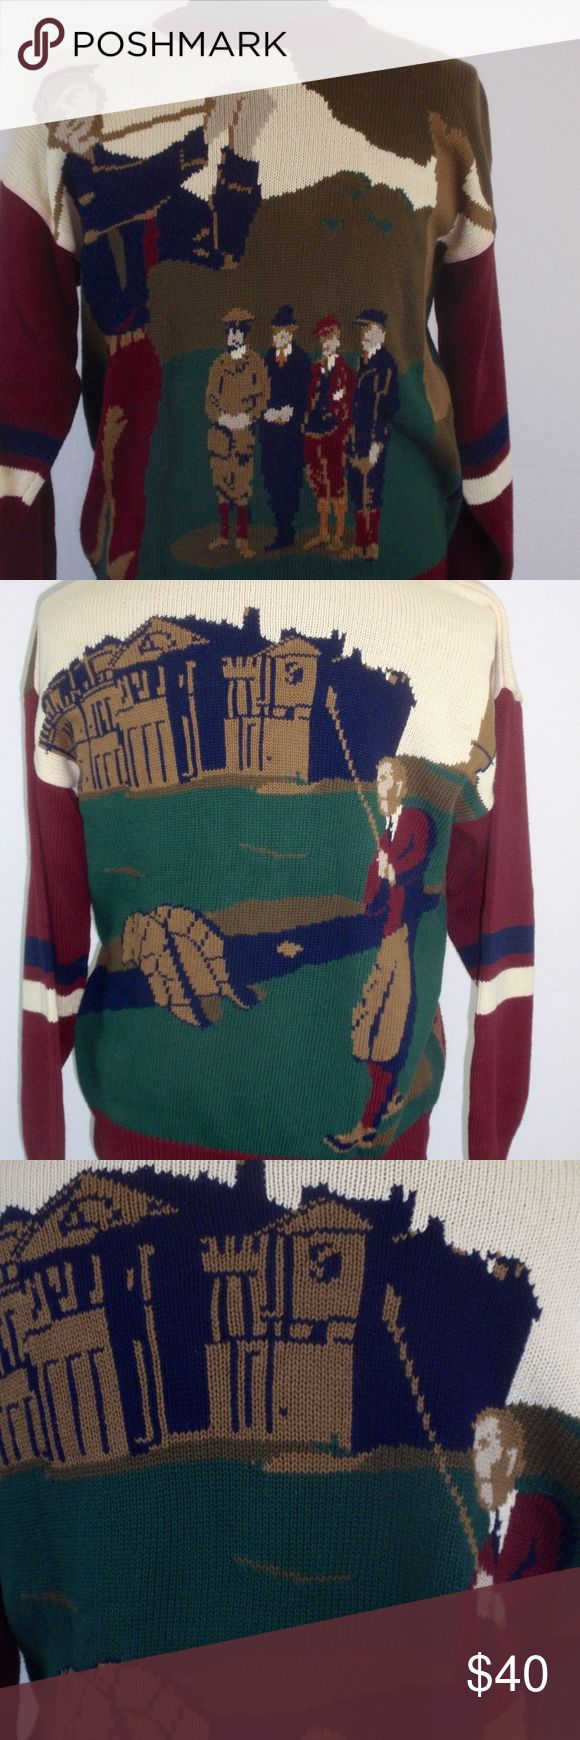 """Vintage Hand Intarsia Knit Golfers Cotton Sweater This is such a cool vintage men's golf sweater with a hand knit intarsia design of gentlemen golfing back in the day!  Maker: Hathaway Listed Size: Large  Measurements: Shoulder seam to shoulder seam :  26"""" Goes off the shoulder Armpit to armpit: 23"""" Bottom of the Collar to Hem: 27""""  Condition:  A bit of the red has bled at the collar and top of one sleeve. -  Otherwise, good pre-owned worn, used but not abused loved condition and coming from…"""